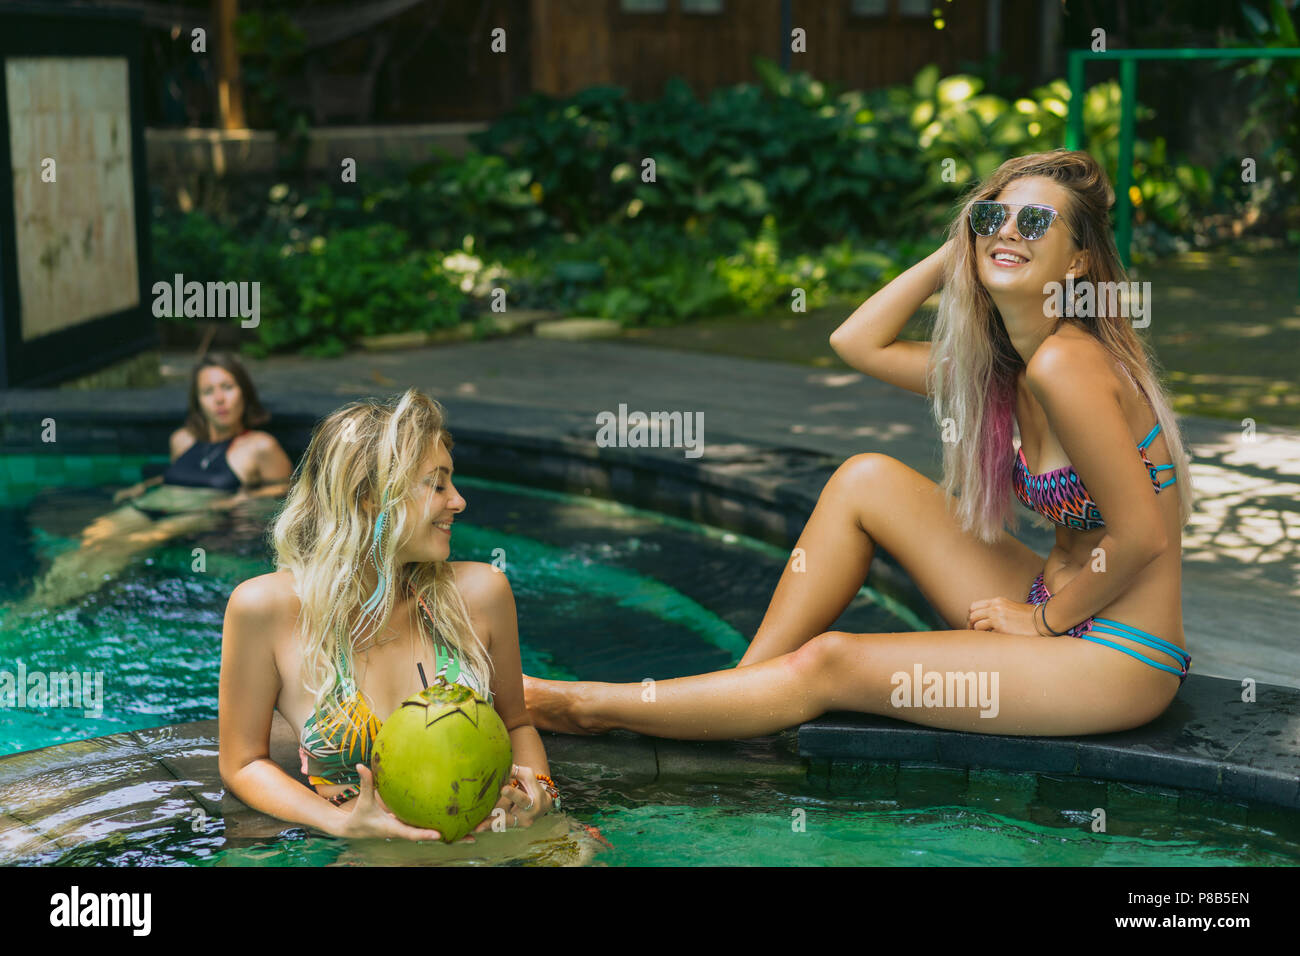 cheerful attractive young women in swimwear relaxing together at swimming pool - Stock Image